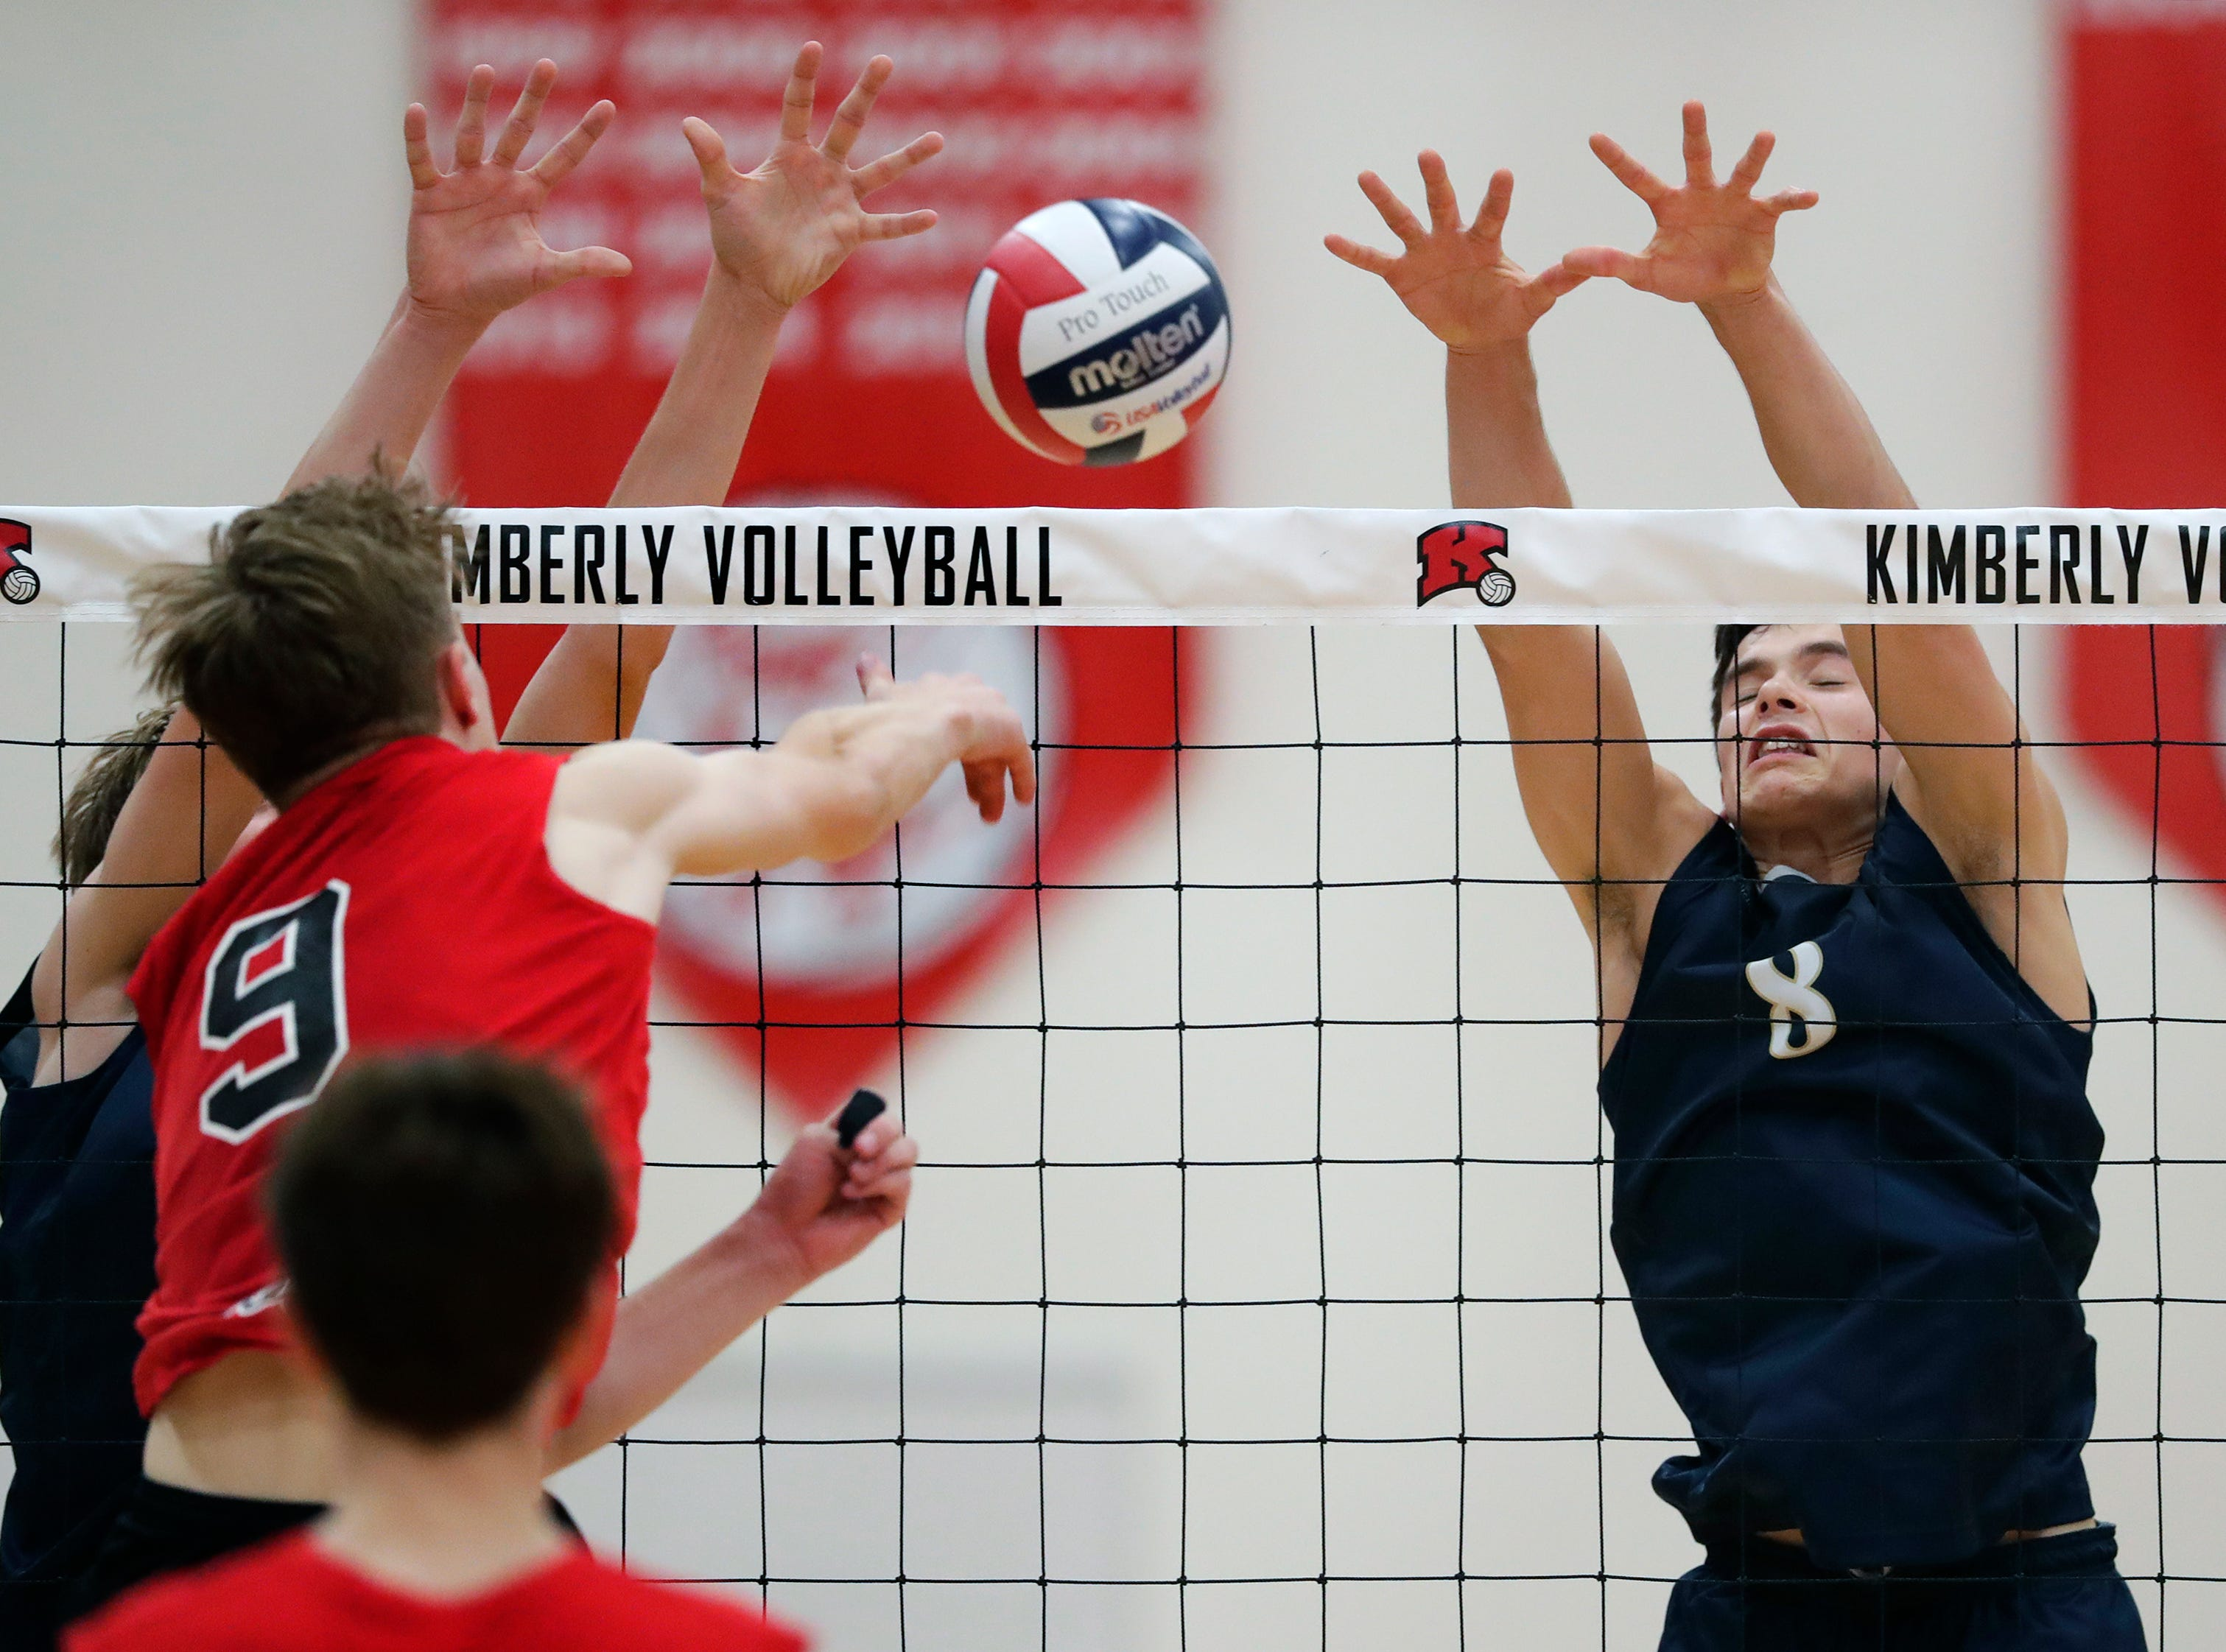 Appleton North High School's Andrew Woodbury (8) defends against Kimberly High School's Tommy Clausz (9) during their boys volleyball match Tuesday, Oct. 9, 2018, in Kimberly, Wis. 